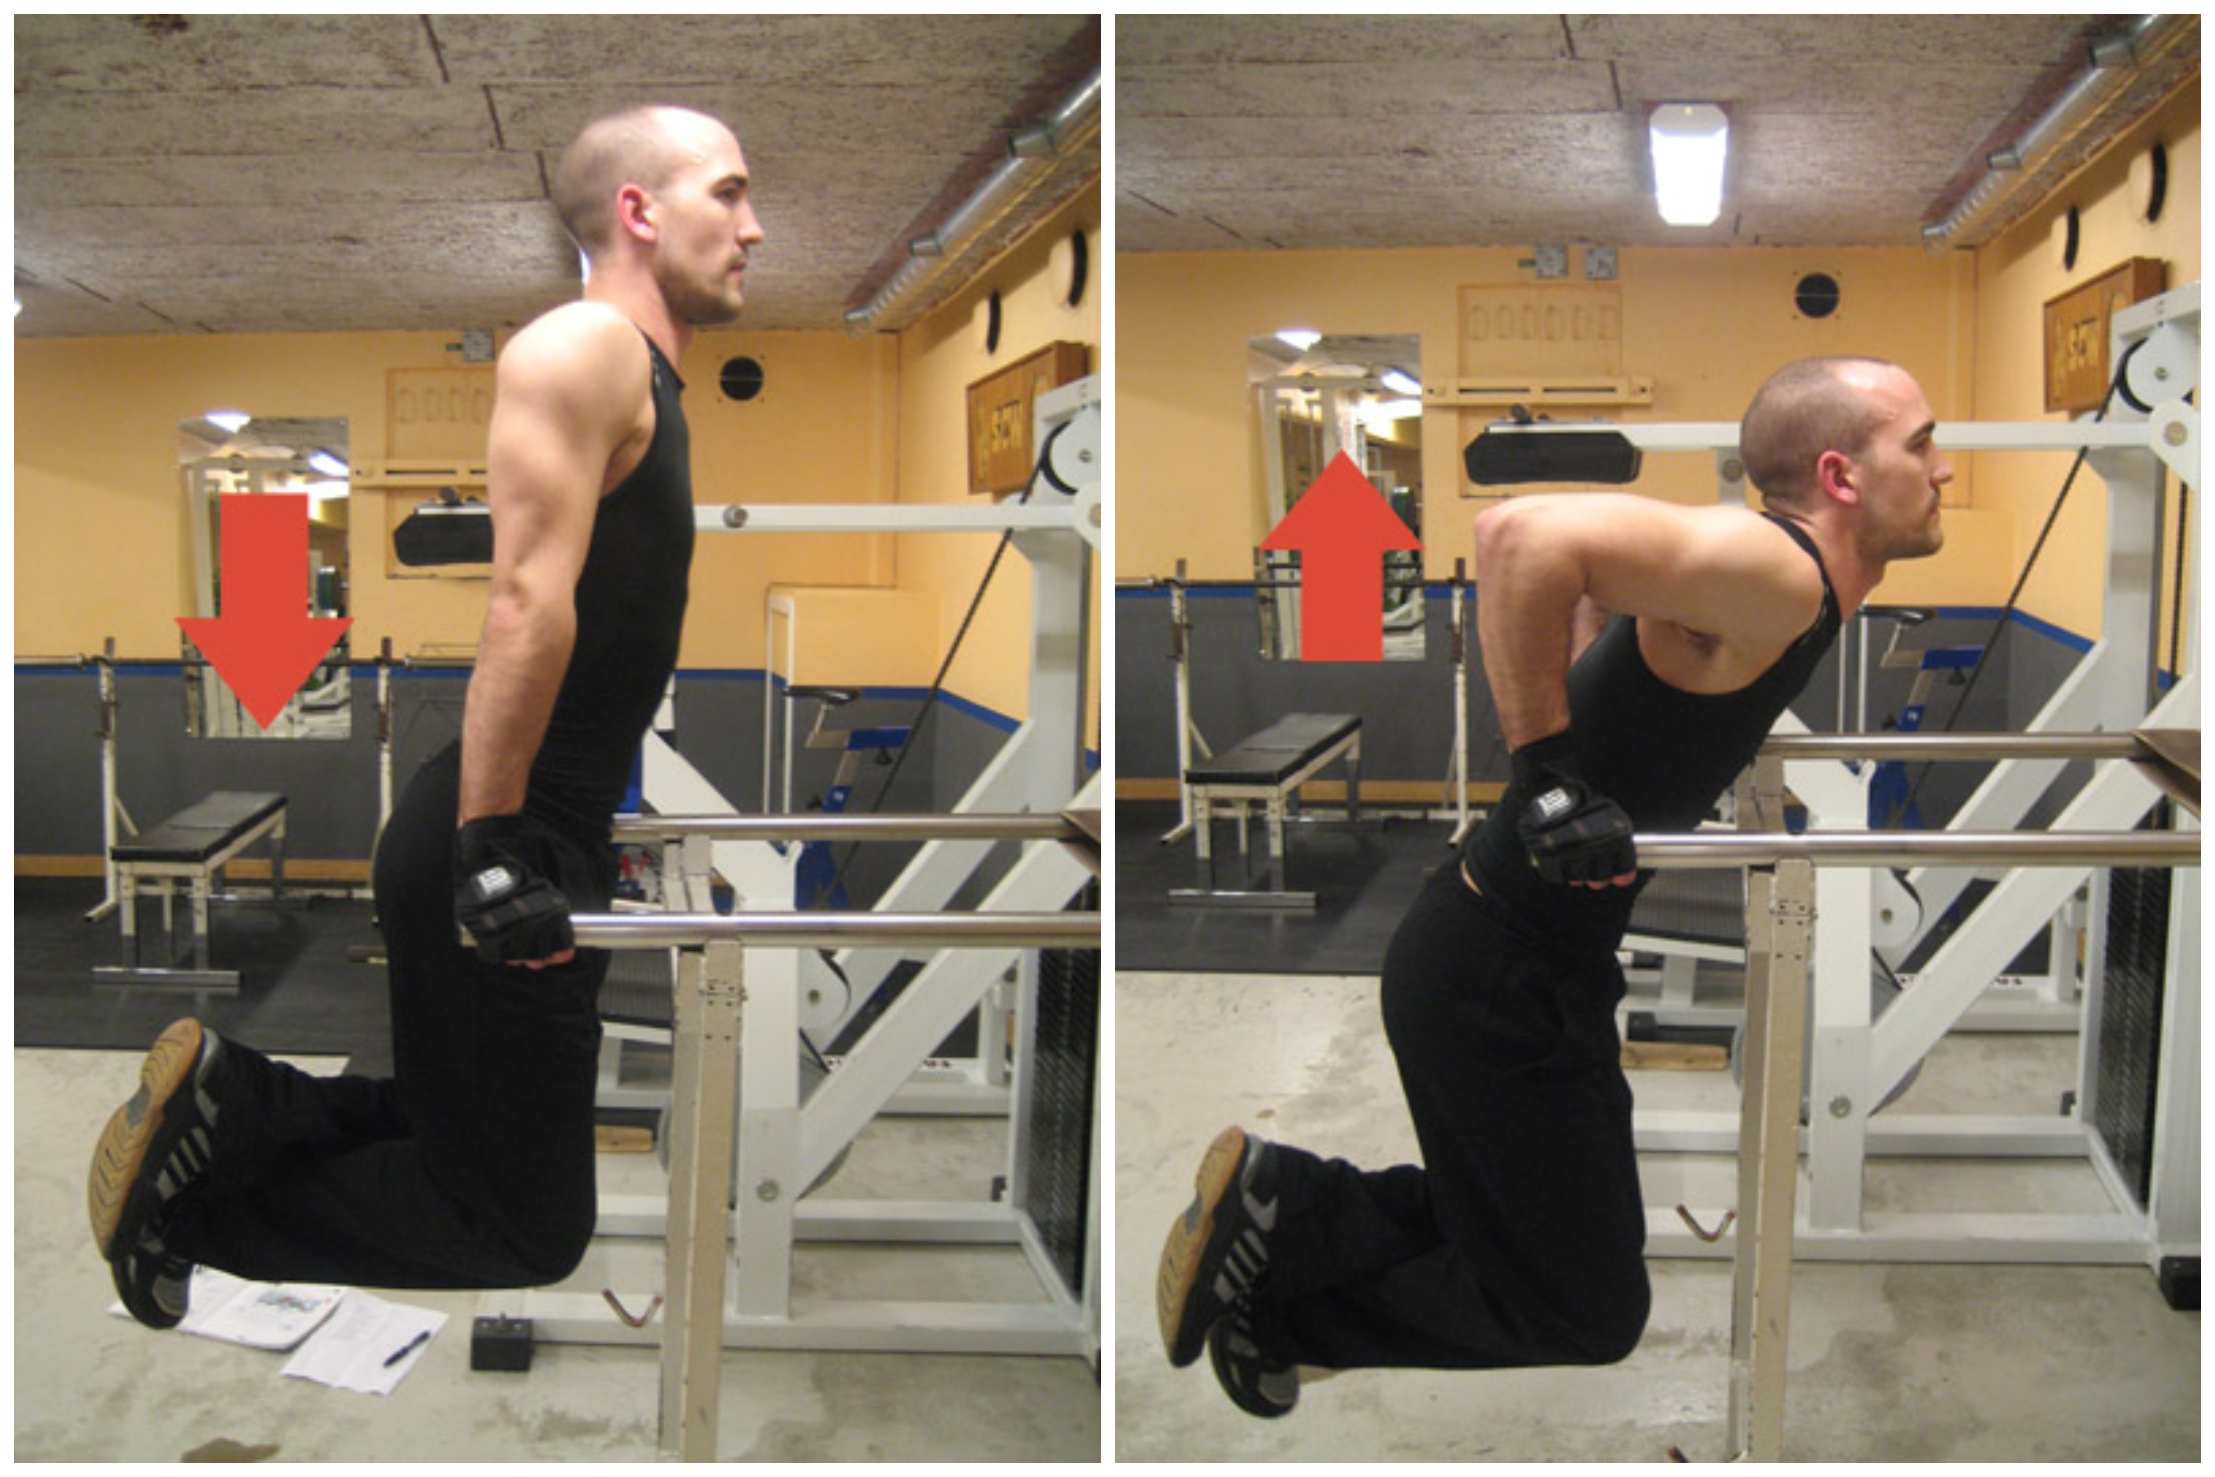 Man demonstrating how to do dips on a dip bar in a gym